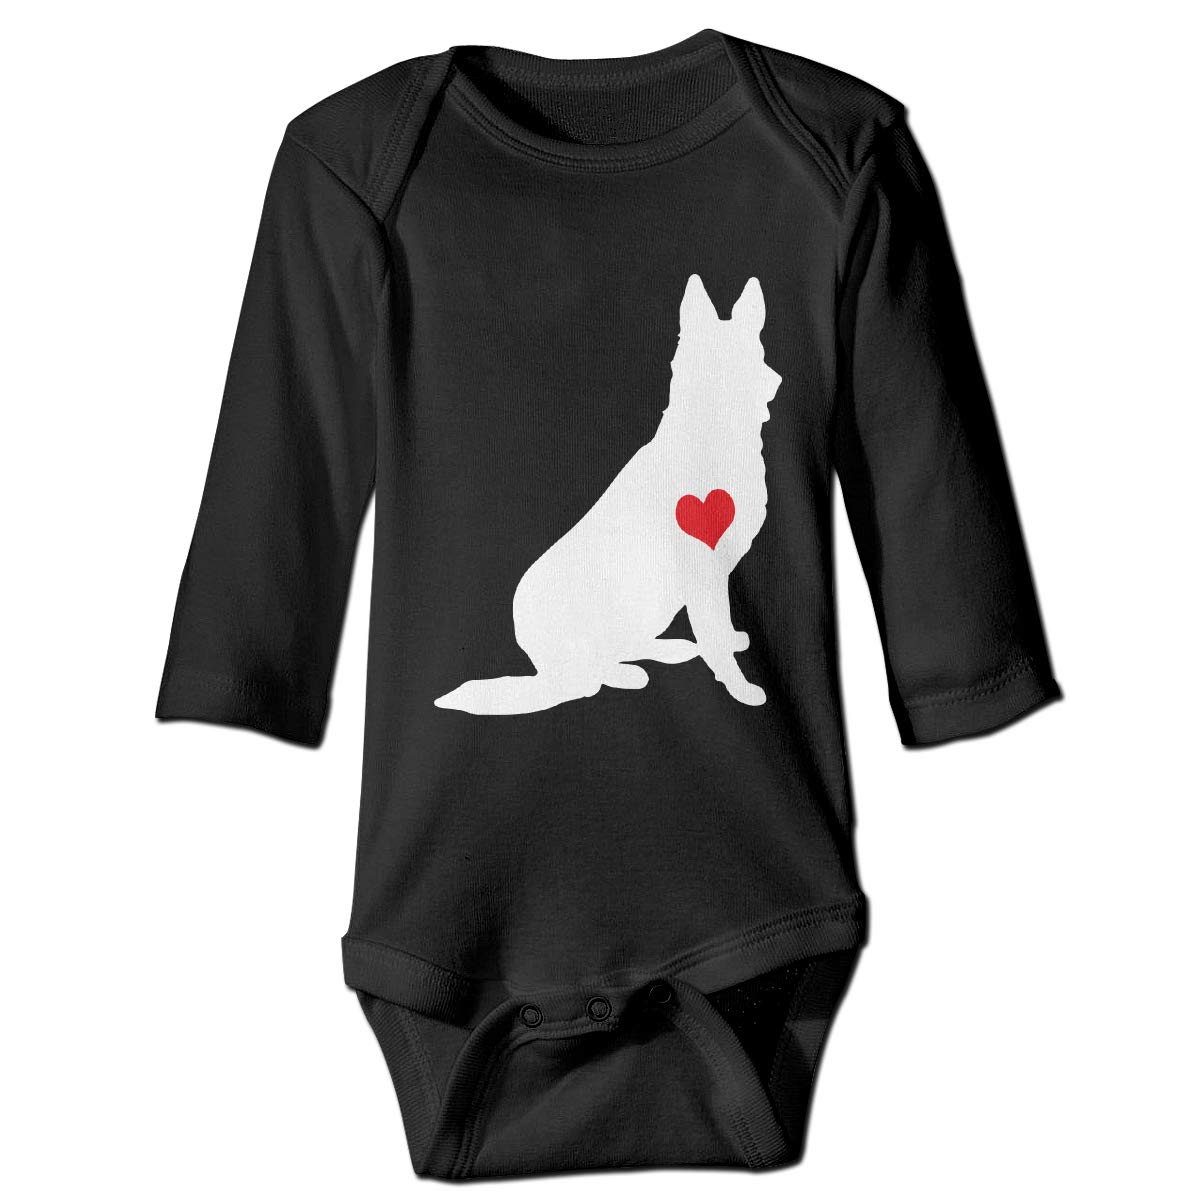 A14UBP Infant Baby Boys Girls Long Sleeve Baby Clothes Adore German Shepherds Unisex Button Playsuit Outfit Clothes